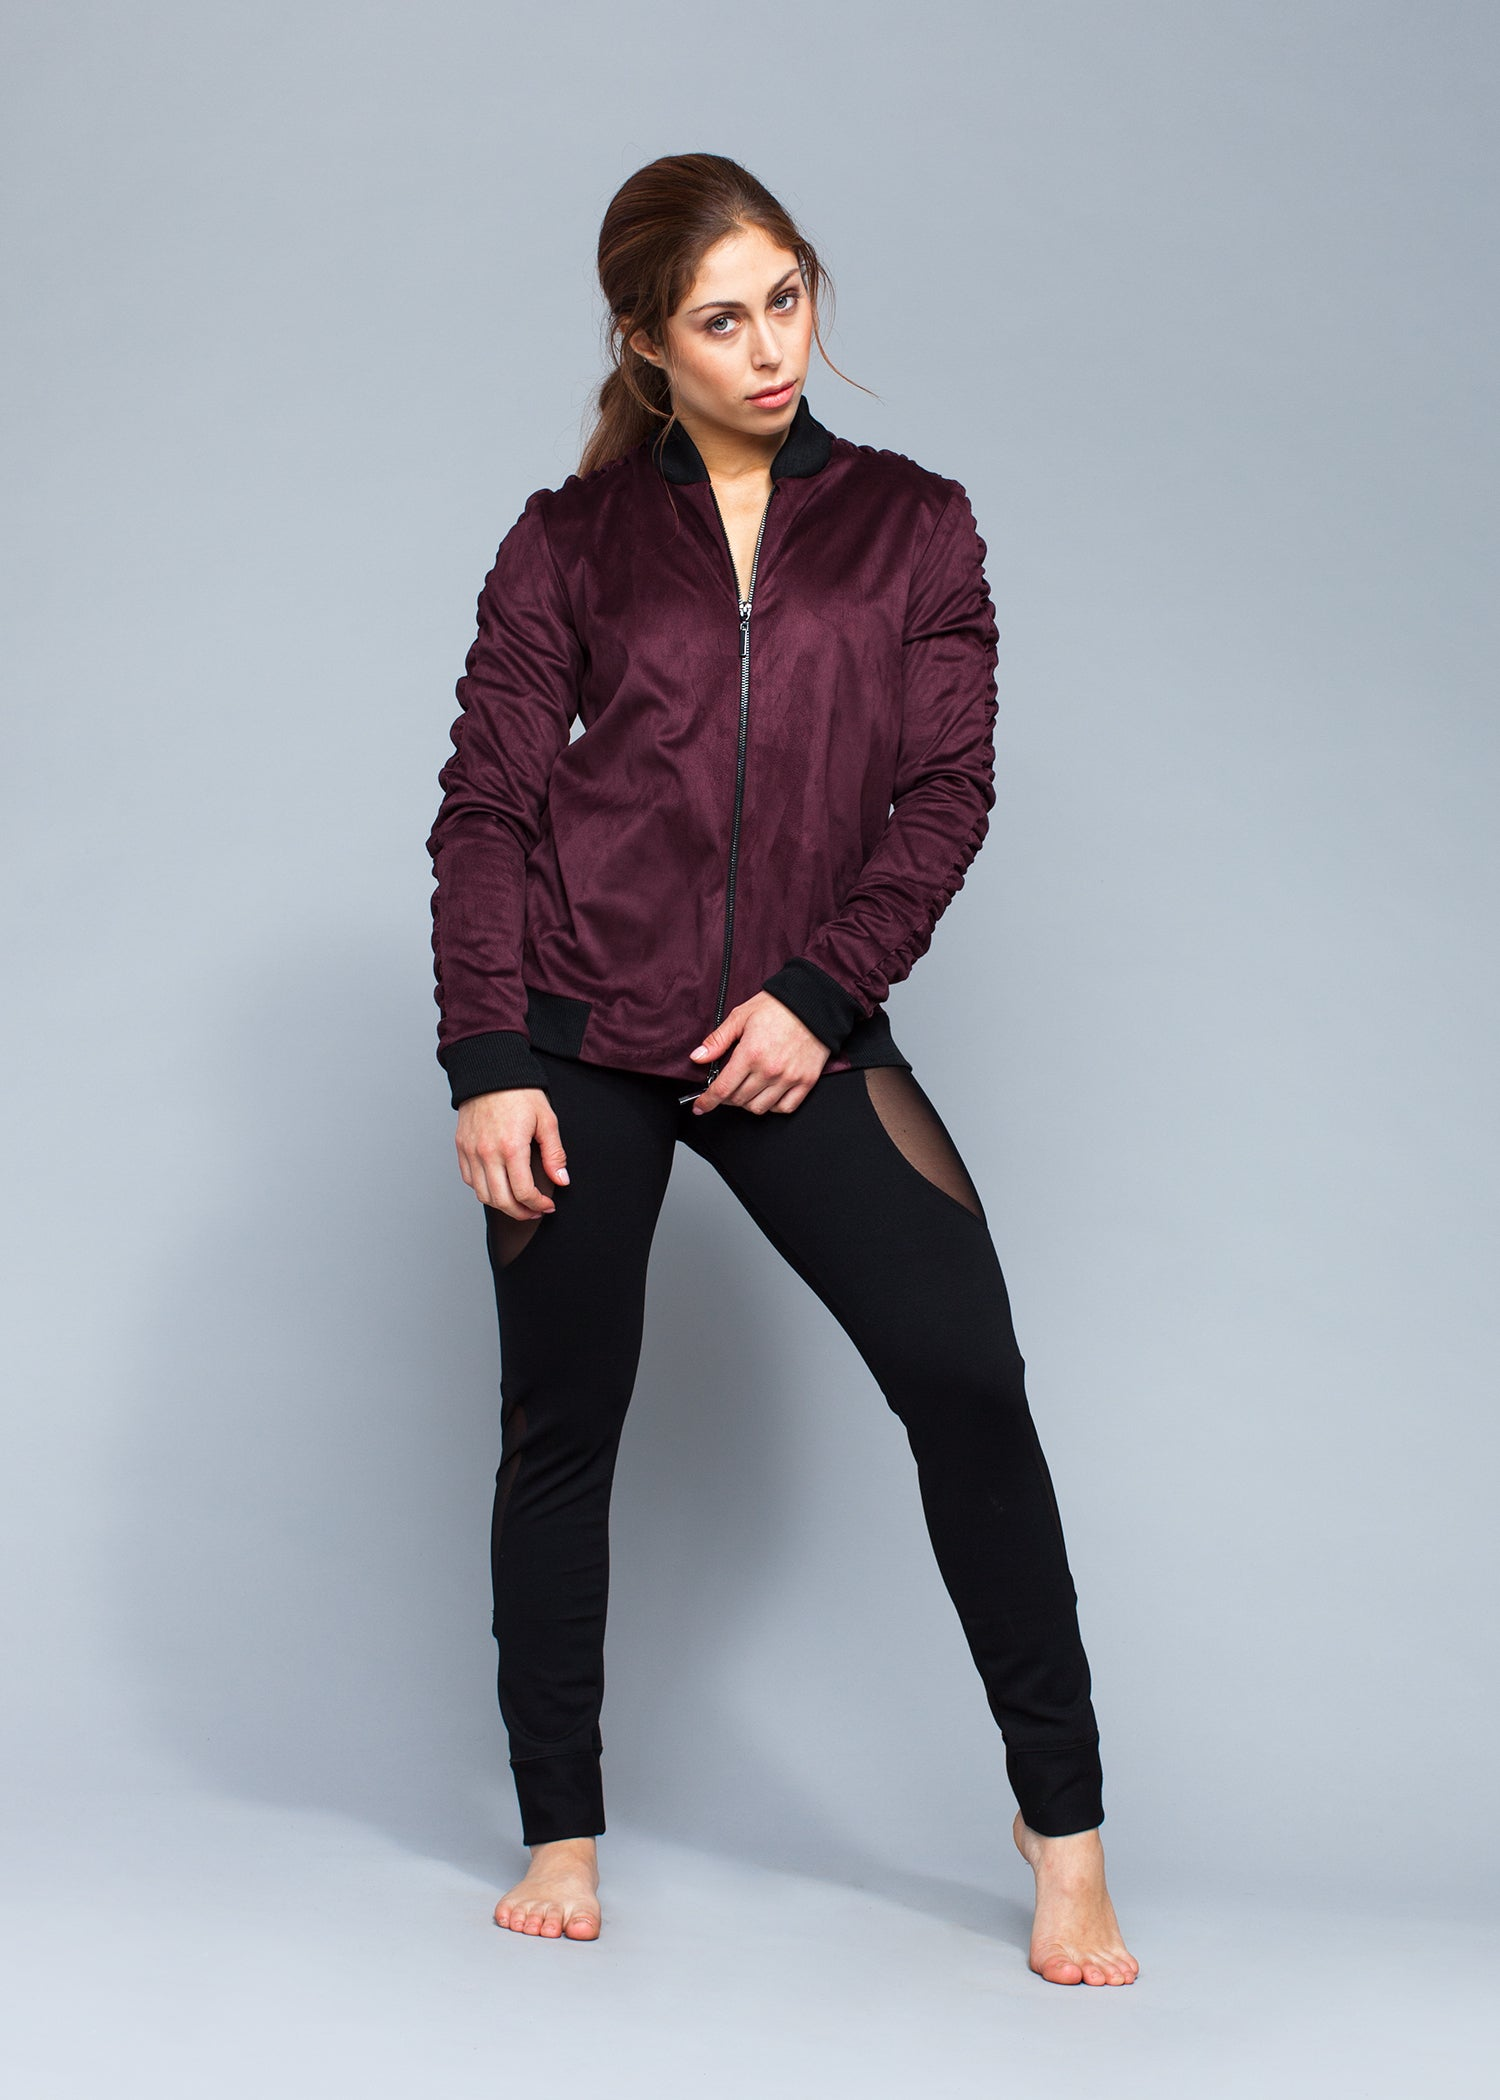 Athluxe track jacket